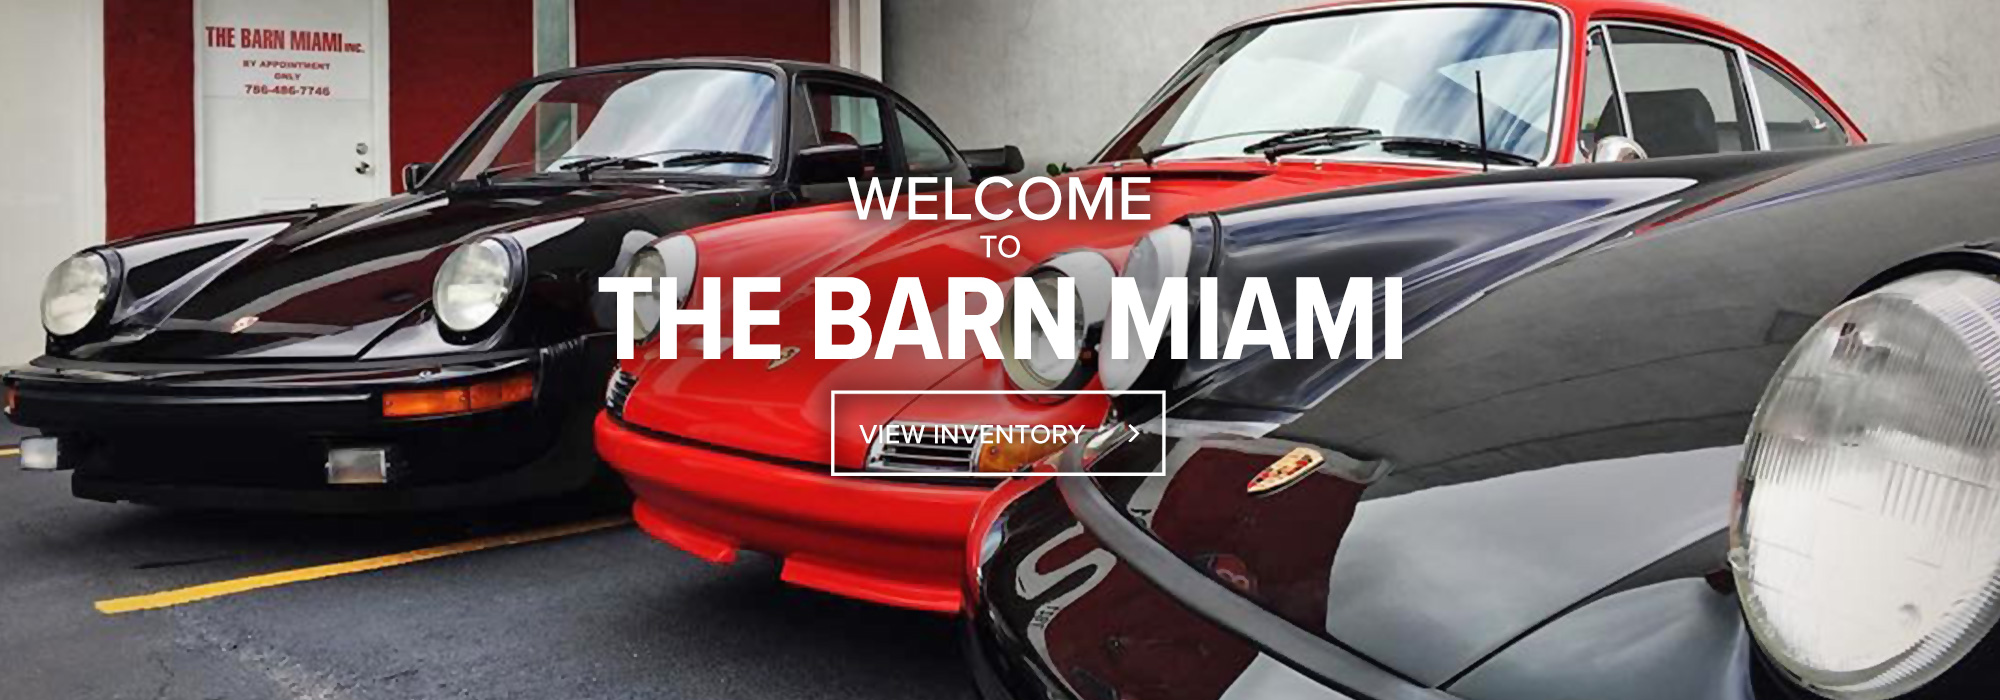 Classic, Exotic & Special Interest Cars For Sale | The Barn Miami